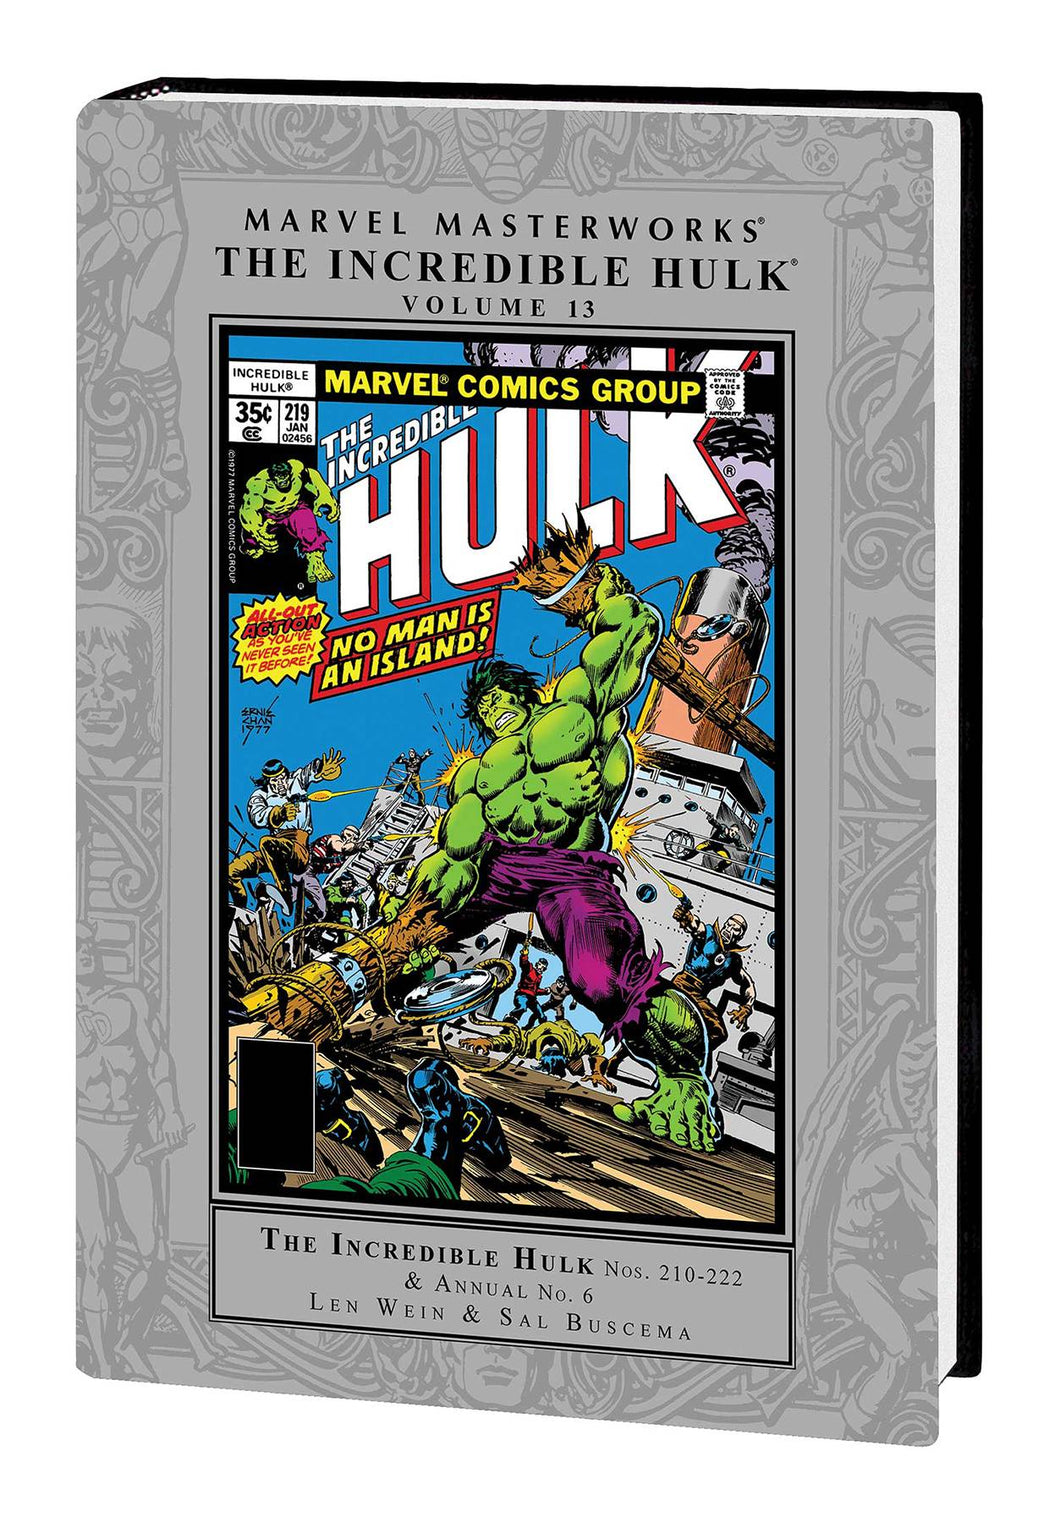 MMW INCREDIBLE HULK HC VOL 13